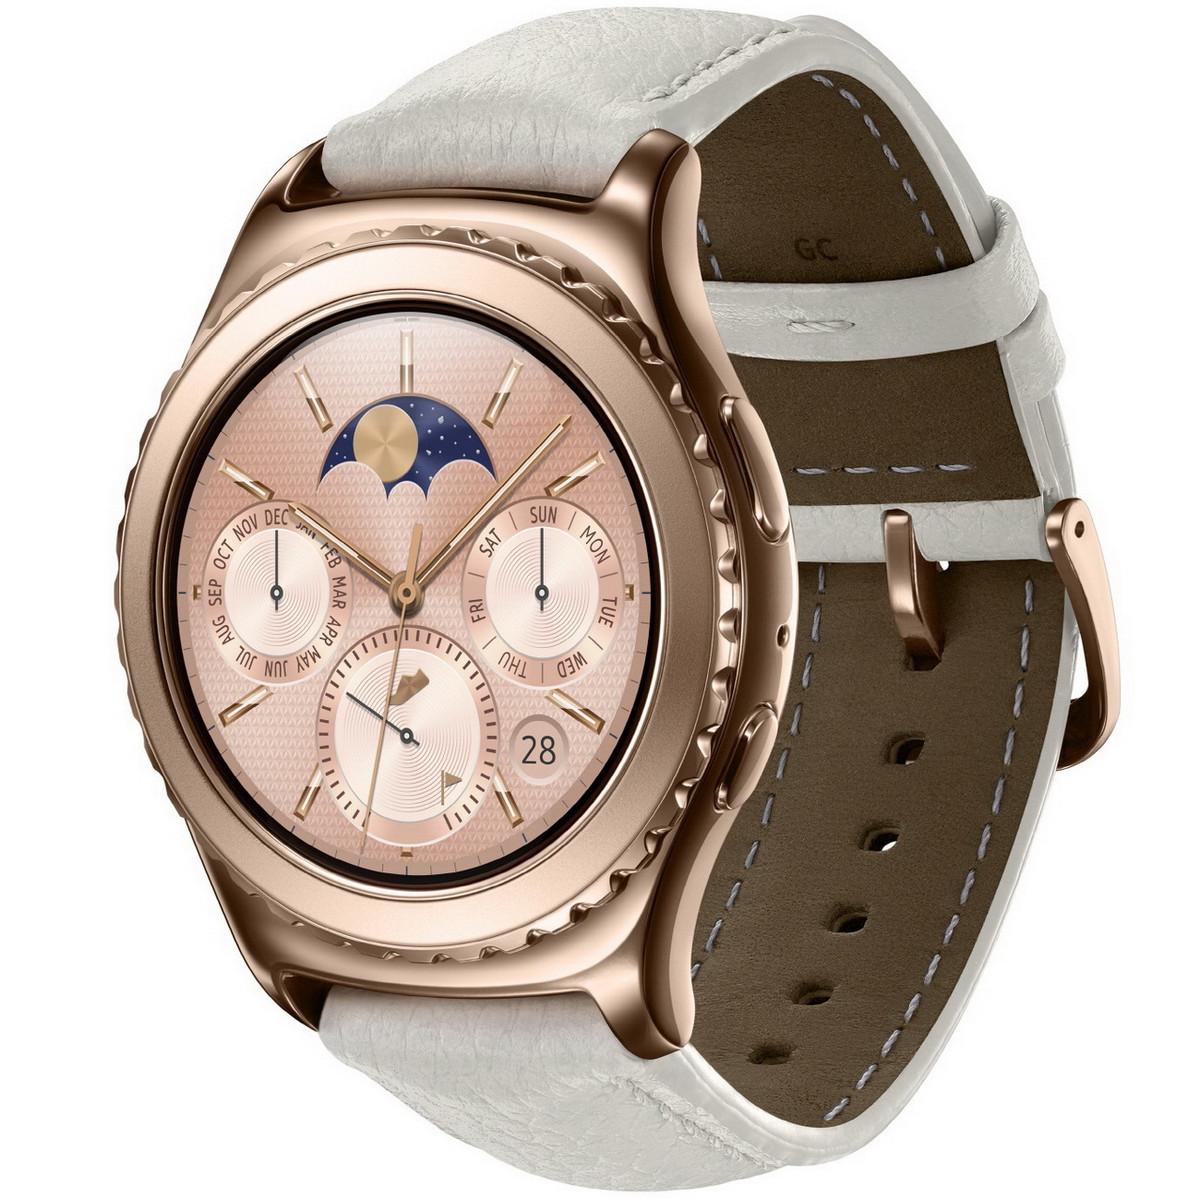 Samsung Gear S2 Classic Coming In Platinum And Rose Gold Colors